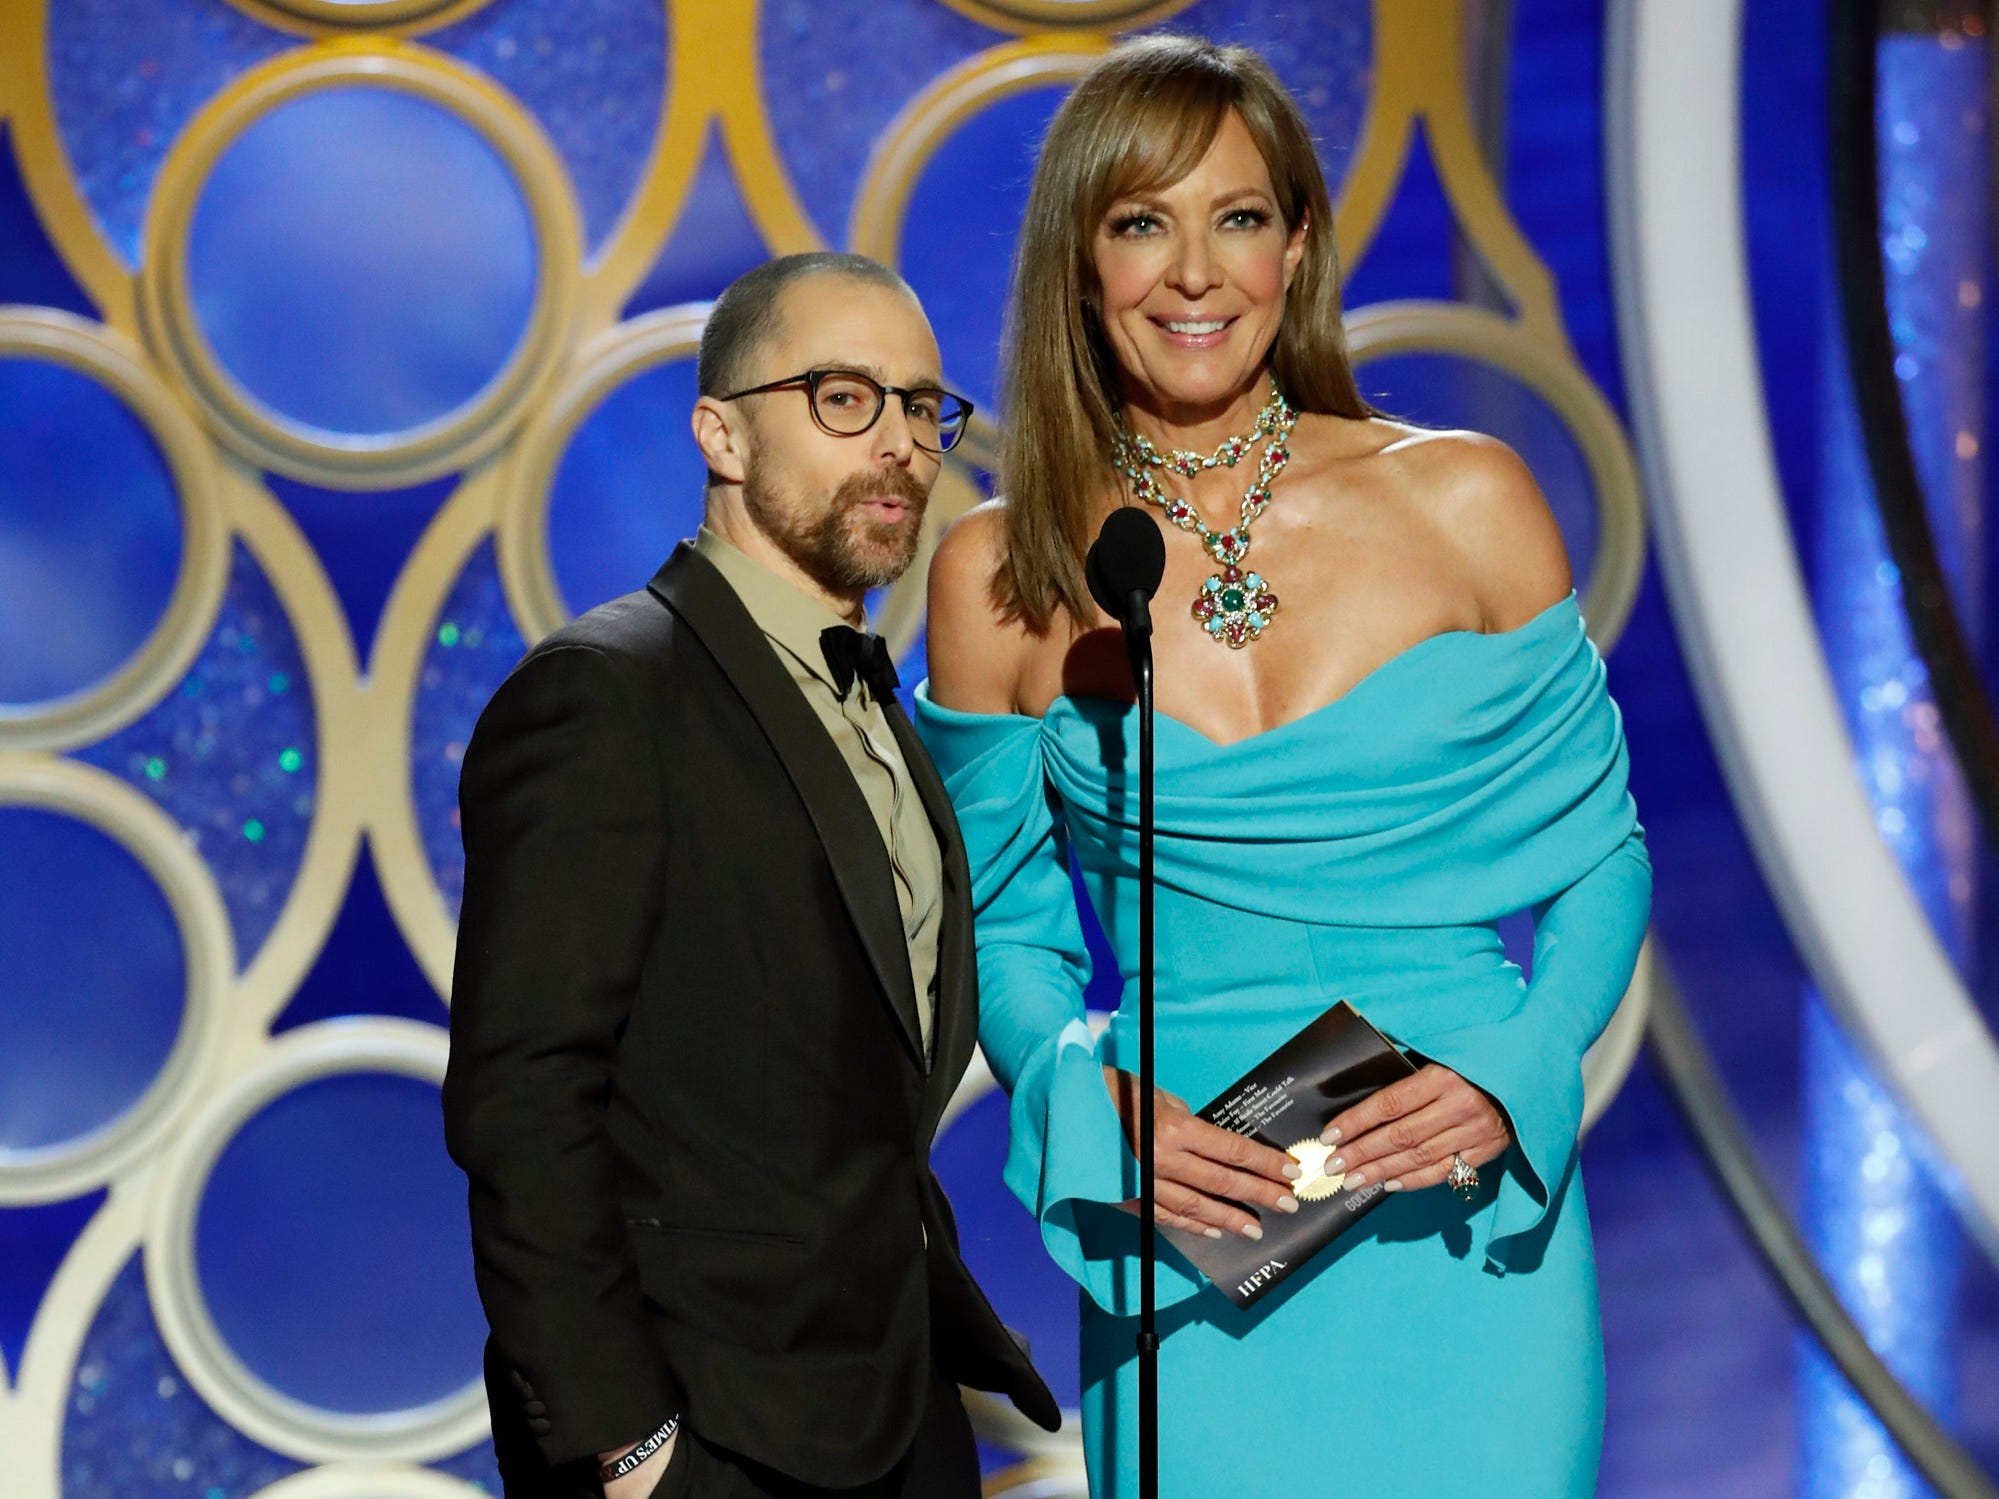 Sam Rockwell and Allison Janney present during the 76th Golden Globe Awards.